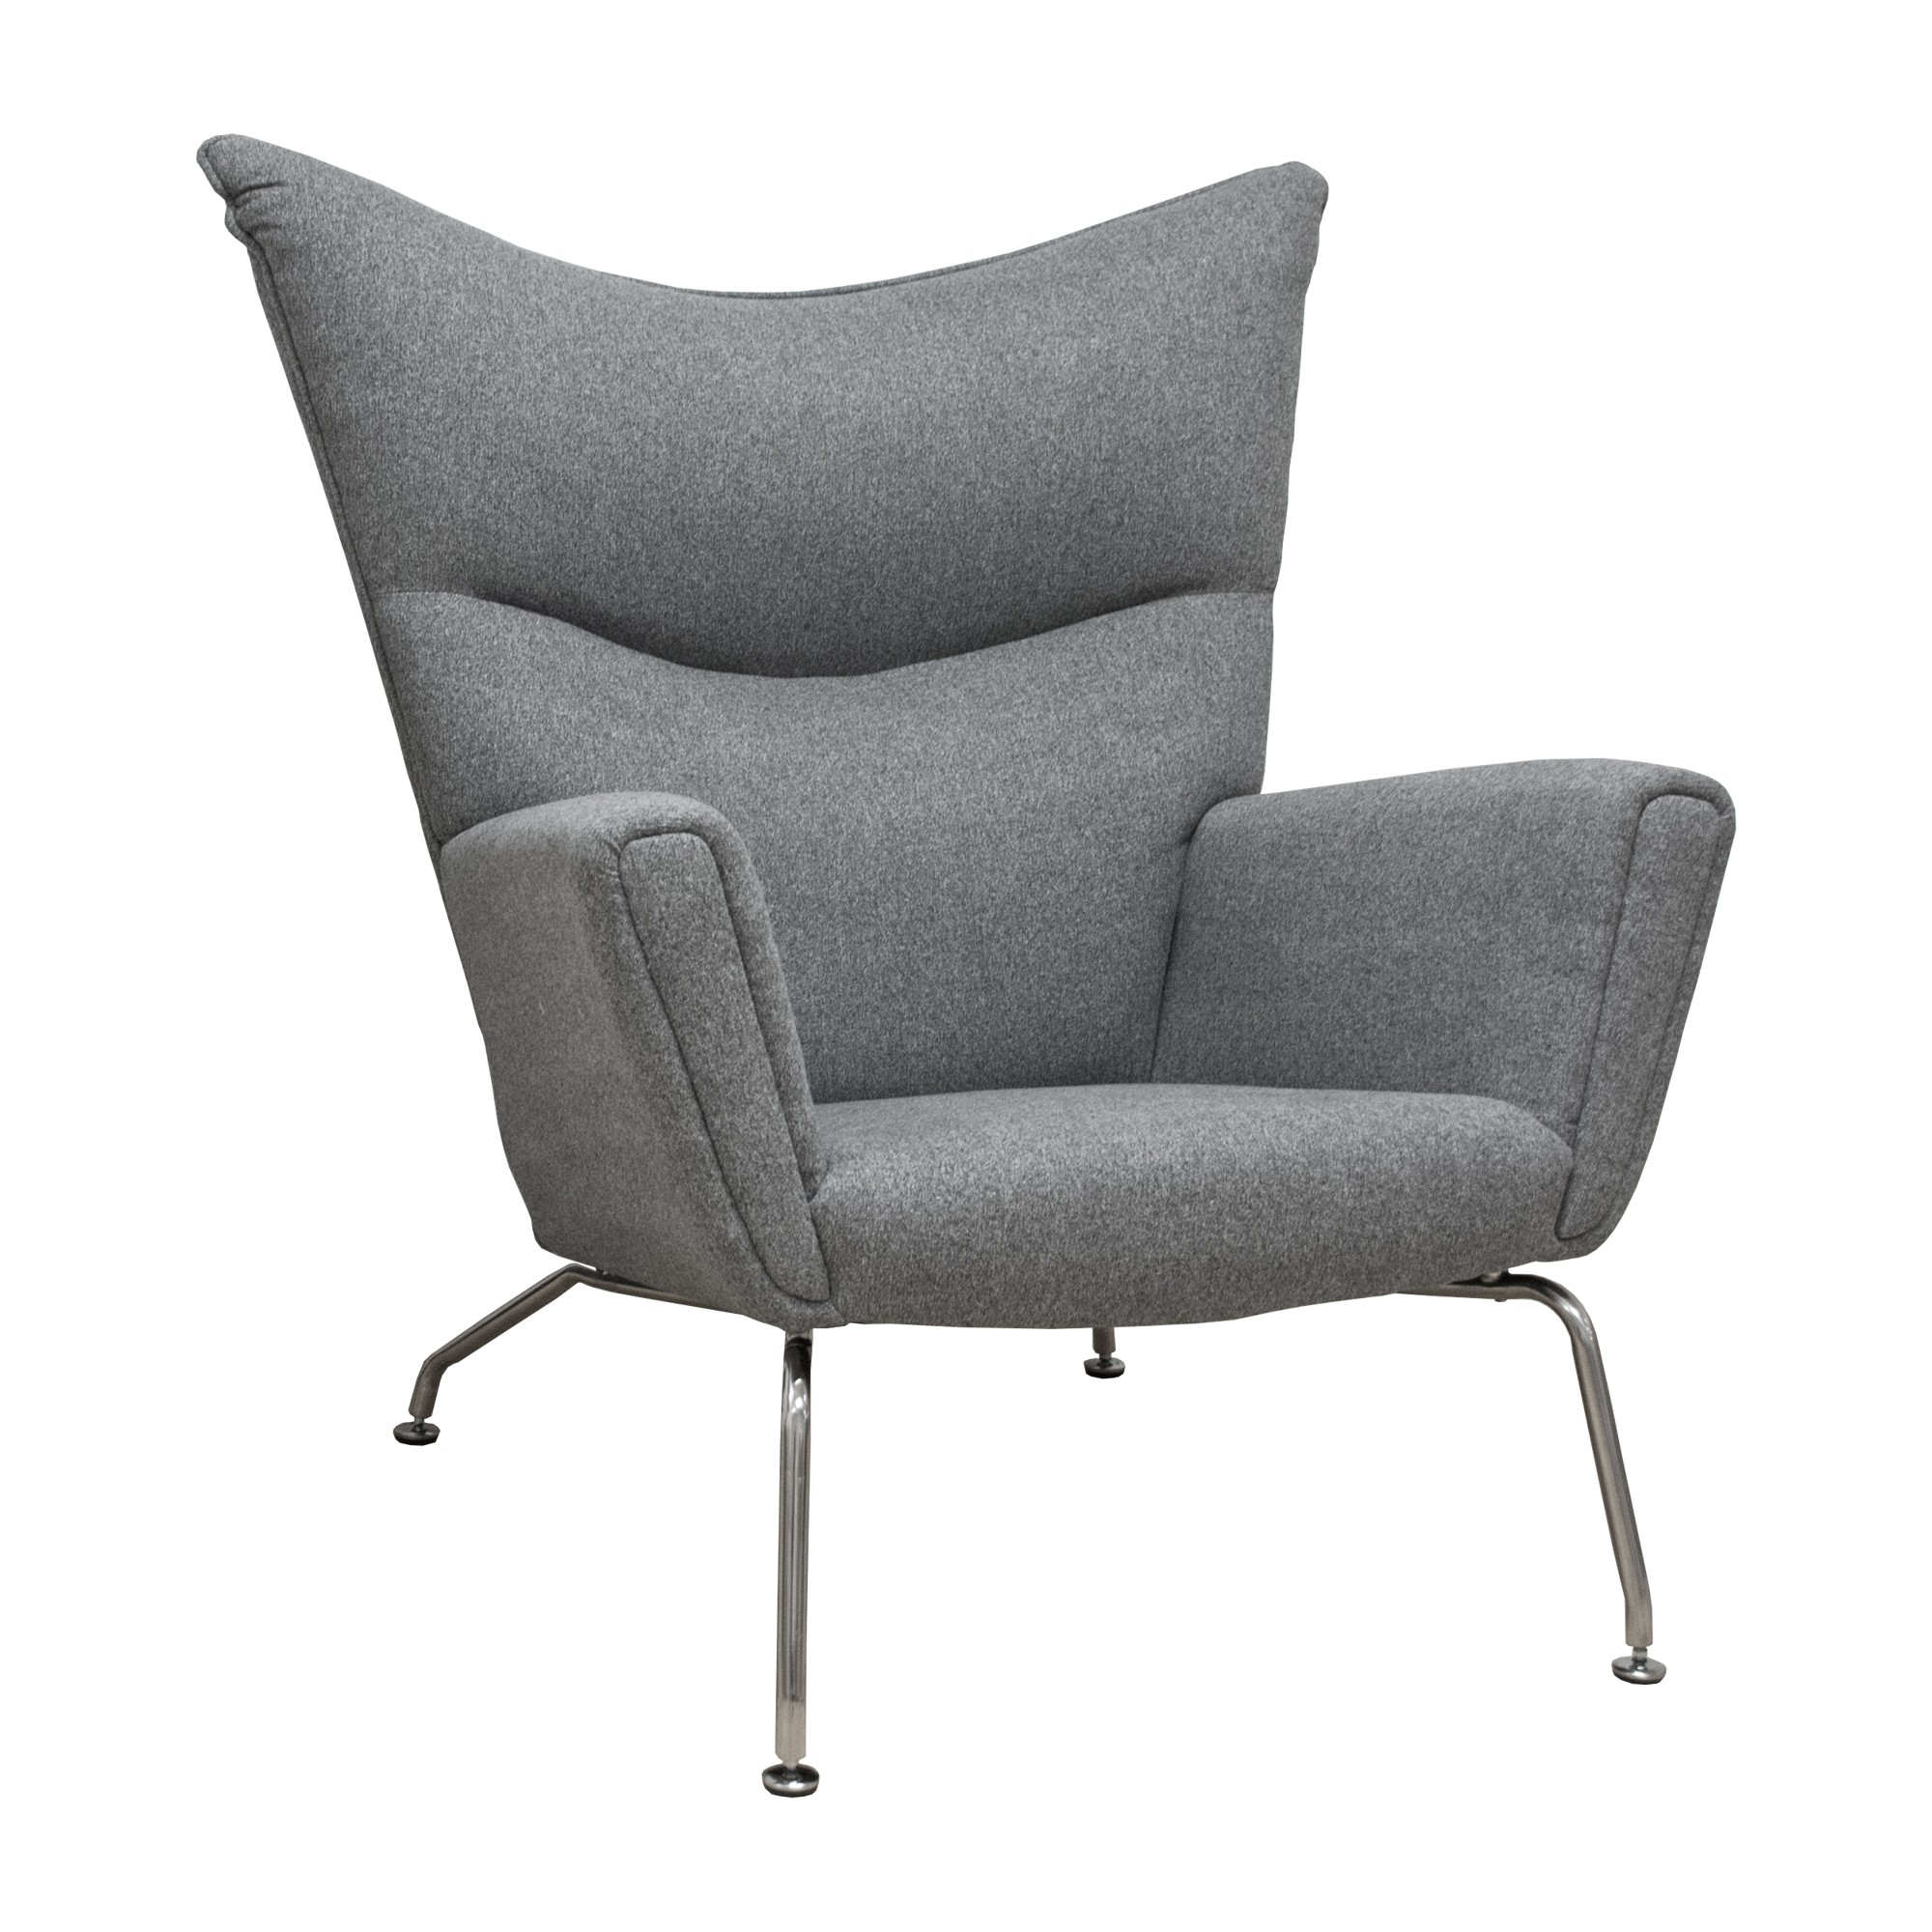 Grey Lounge Chair Classic Lounge Chair And Ottoman Grey